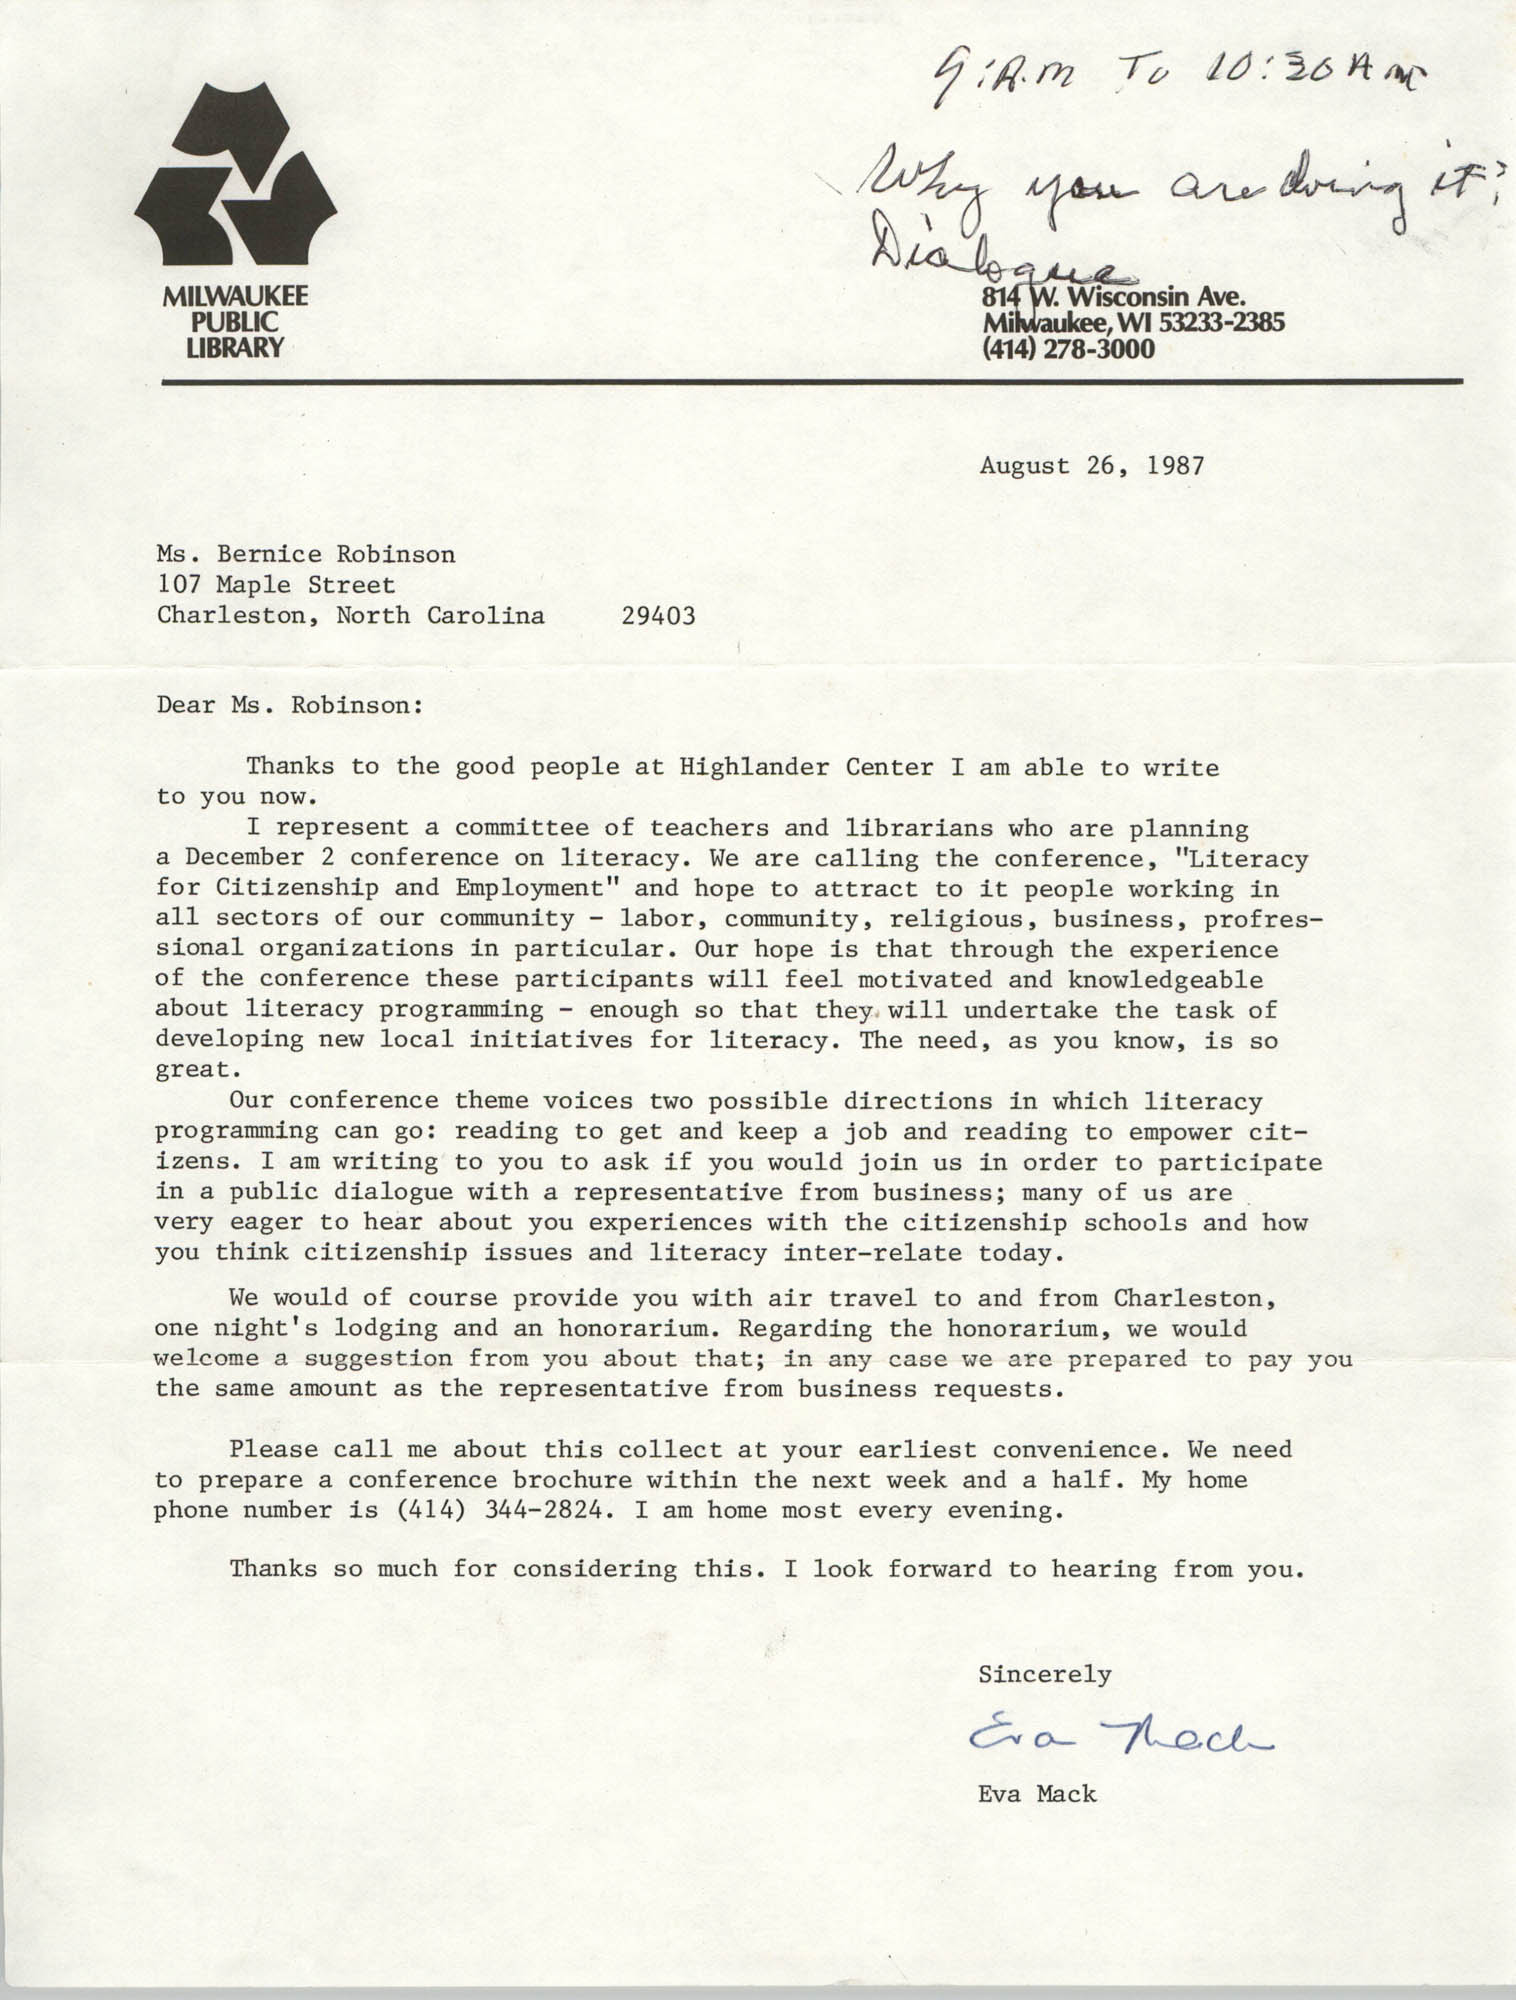 Letter from Eva Mack to Bernice Robinson, August 26, 1987